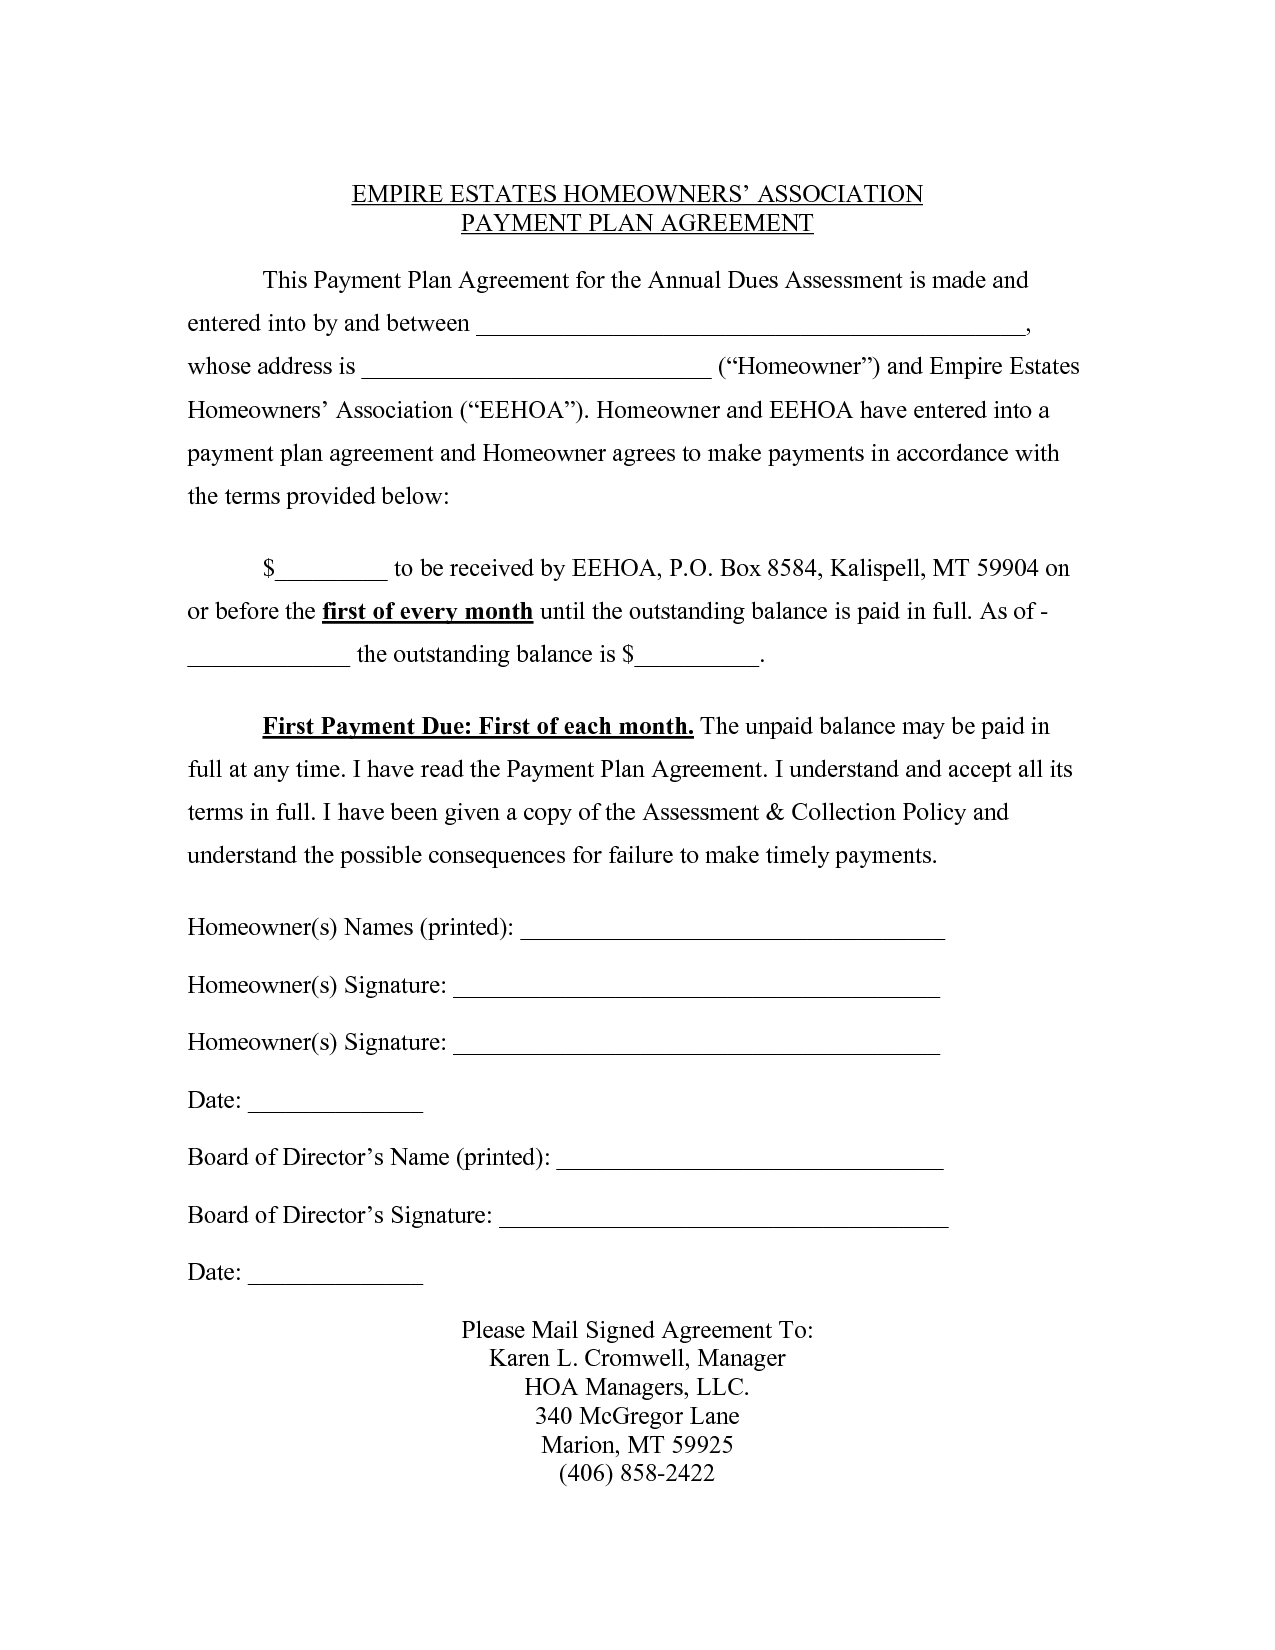 loan agreement template microsoft word templates qpfwvy free car payment contract template